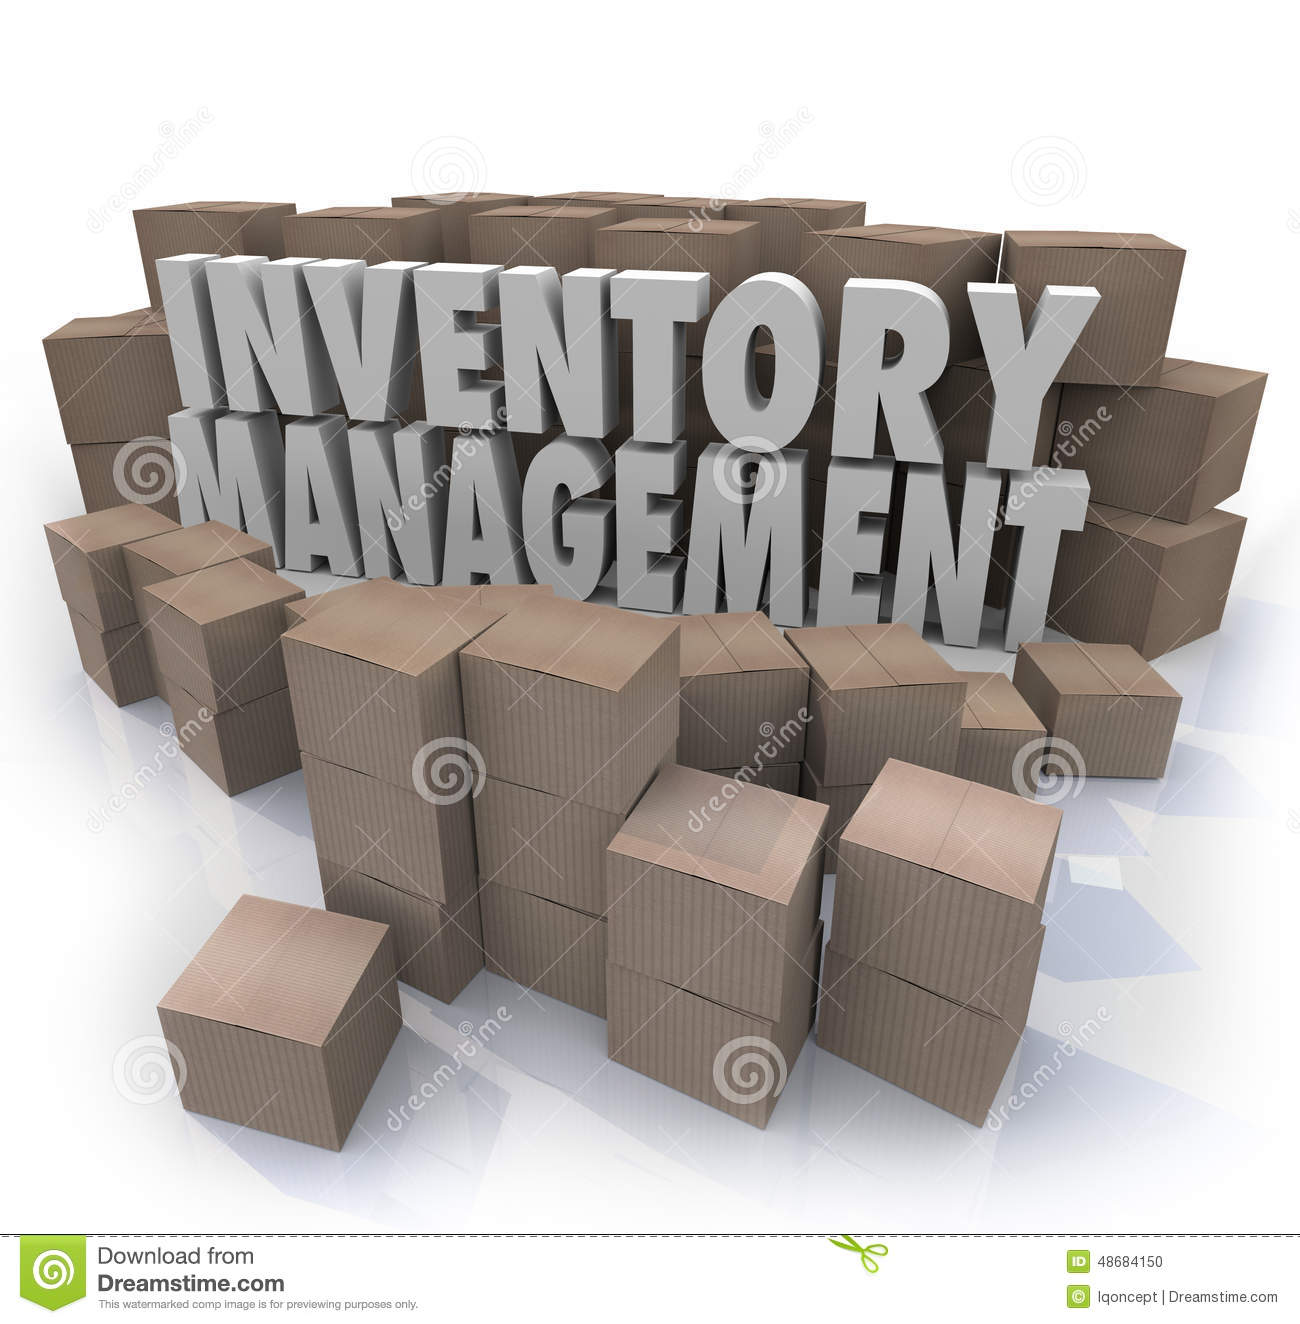 Inventory management clipart 2 » Clipart Station.